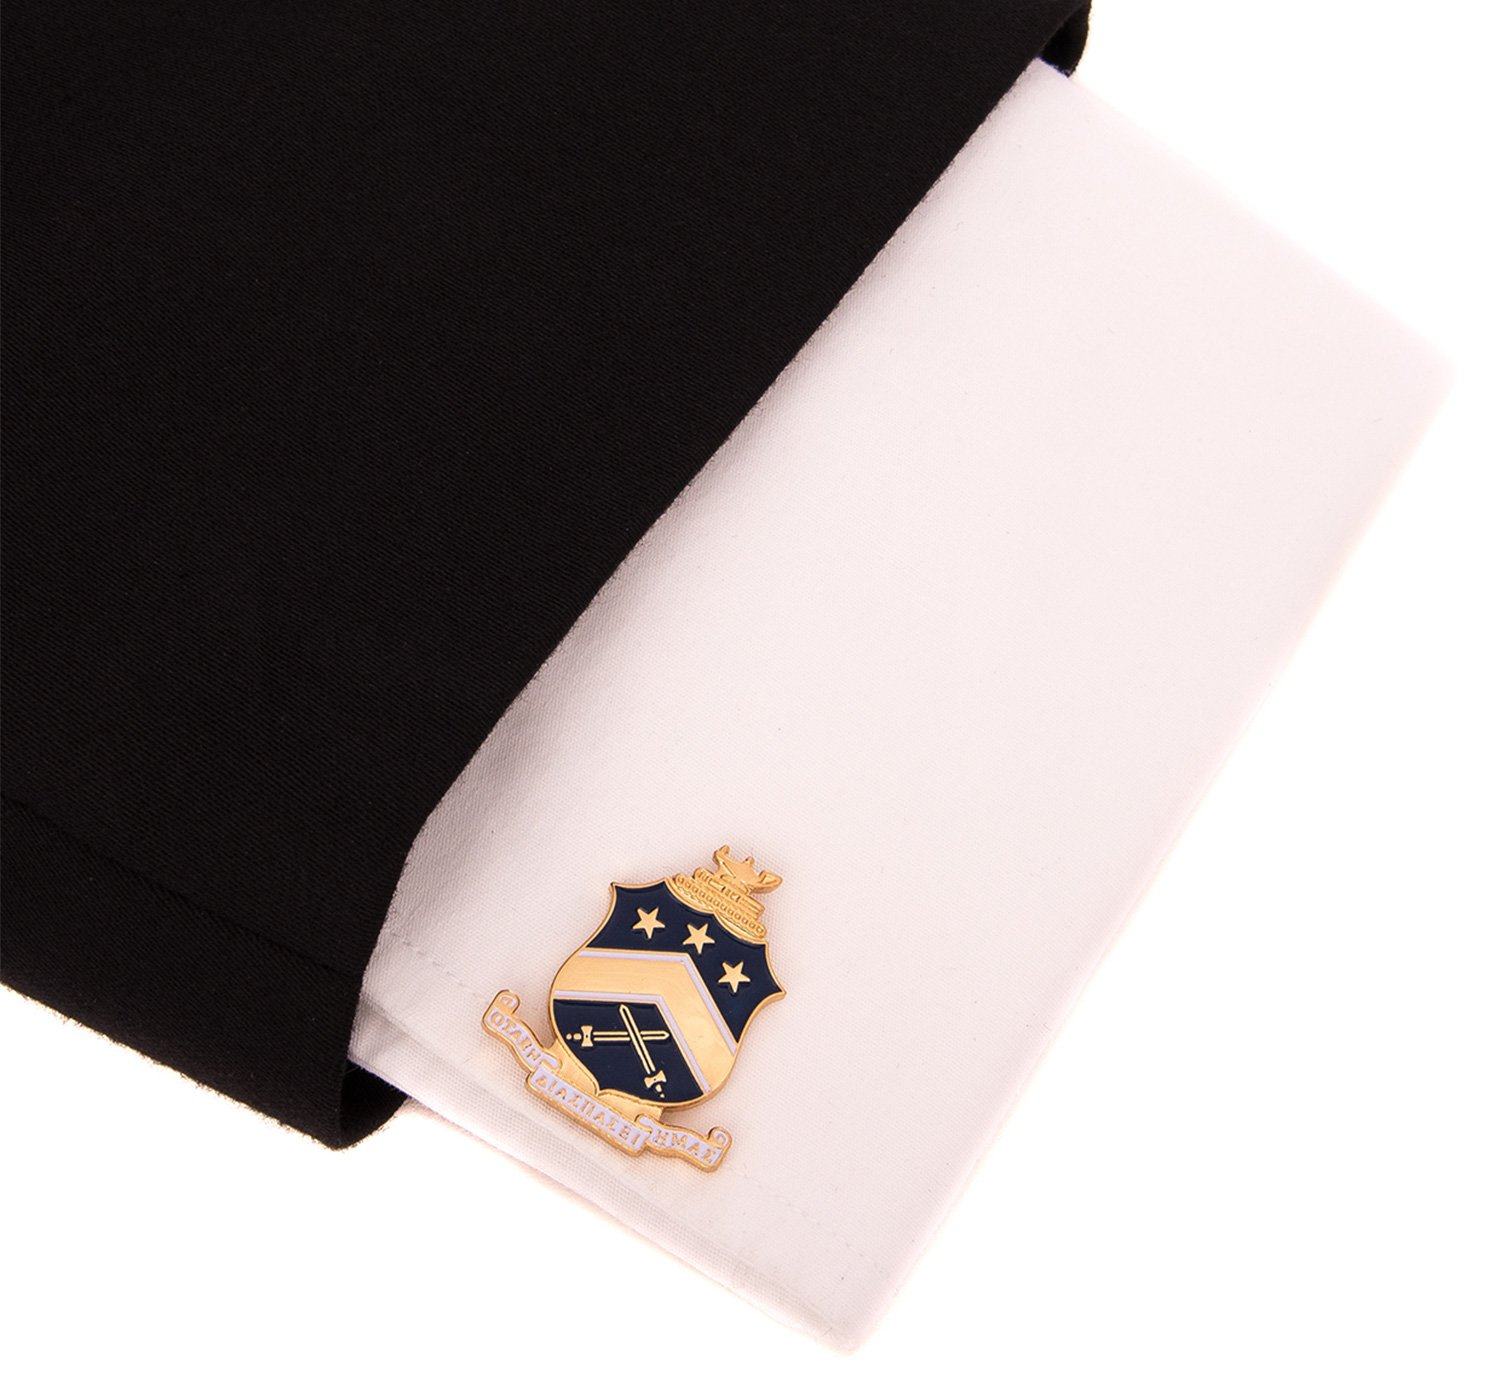 Desert Cactus Pi Kappa Phi Fraternity Crest Cufflinks Greek Formal Wear Blazer Jacket Pi Kapp by Desert Cactus (Image #3)